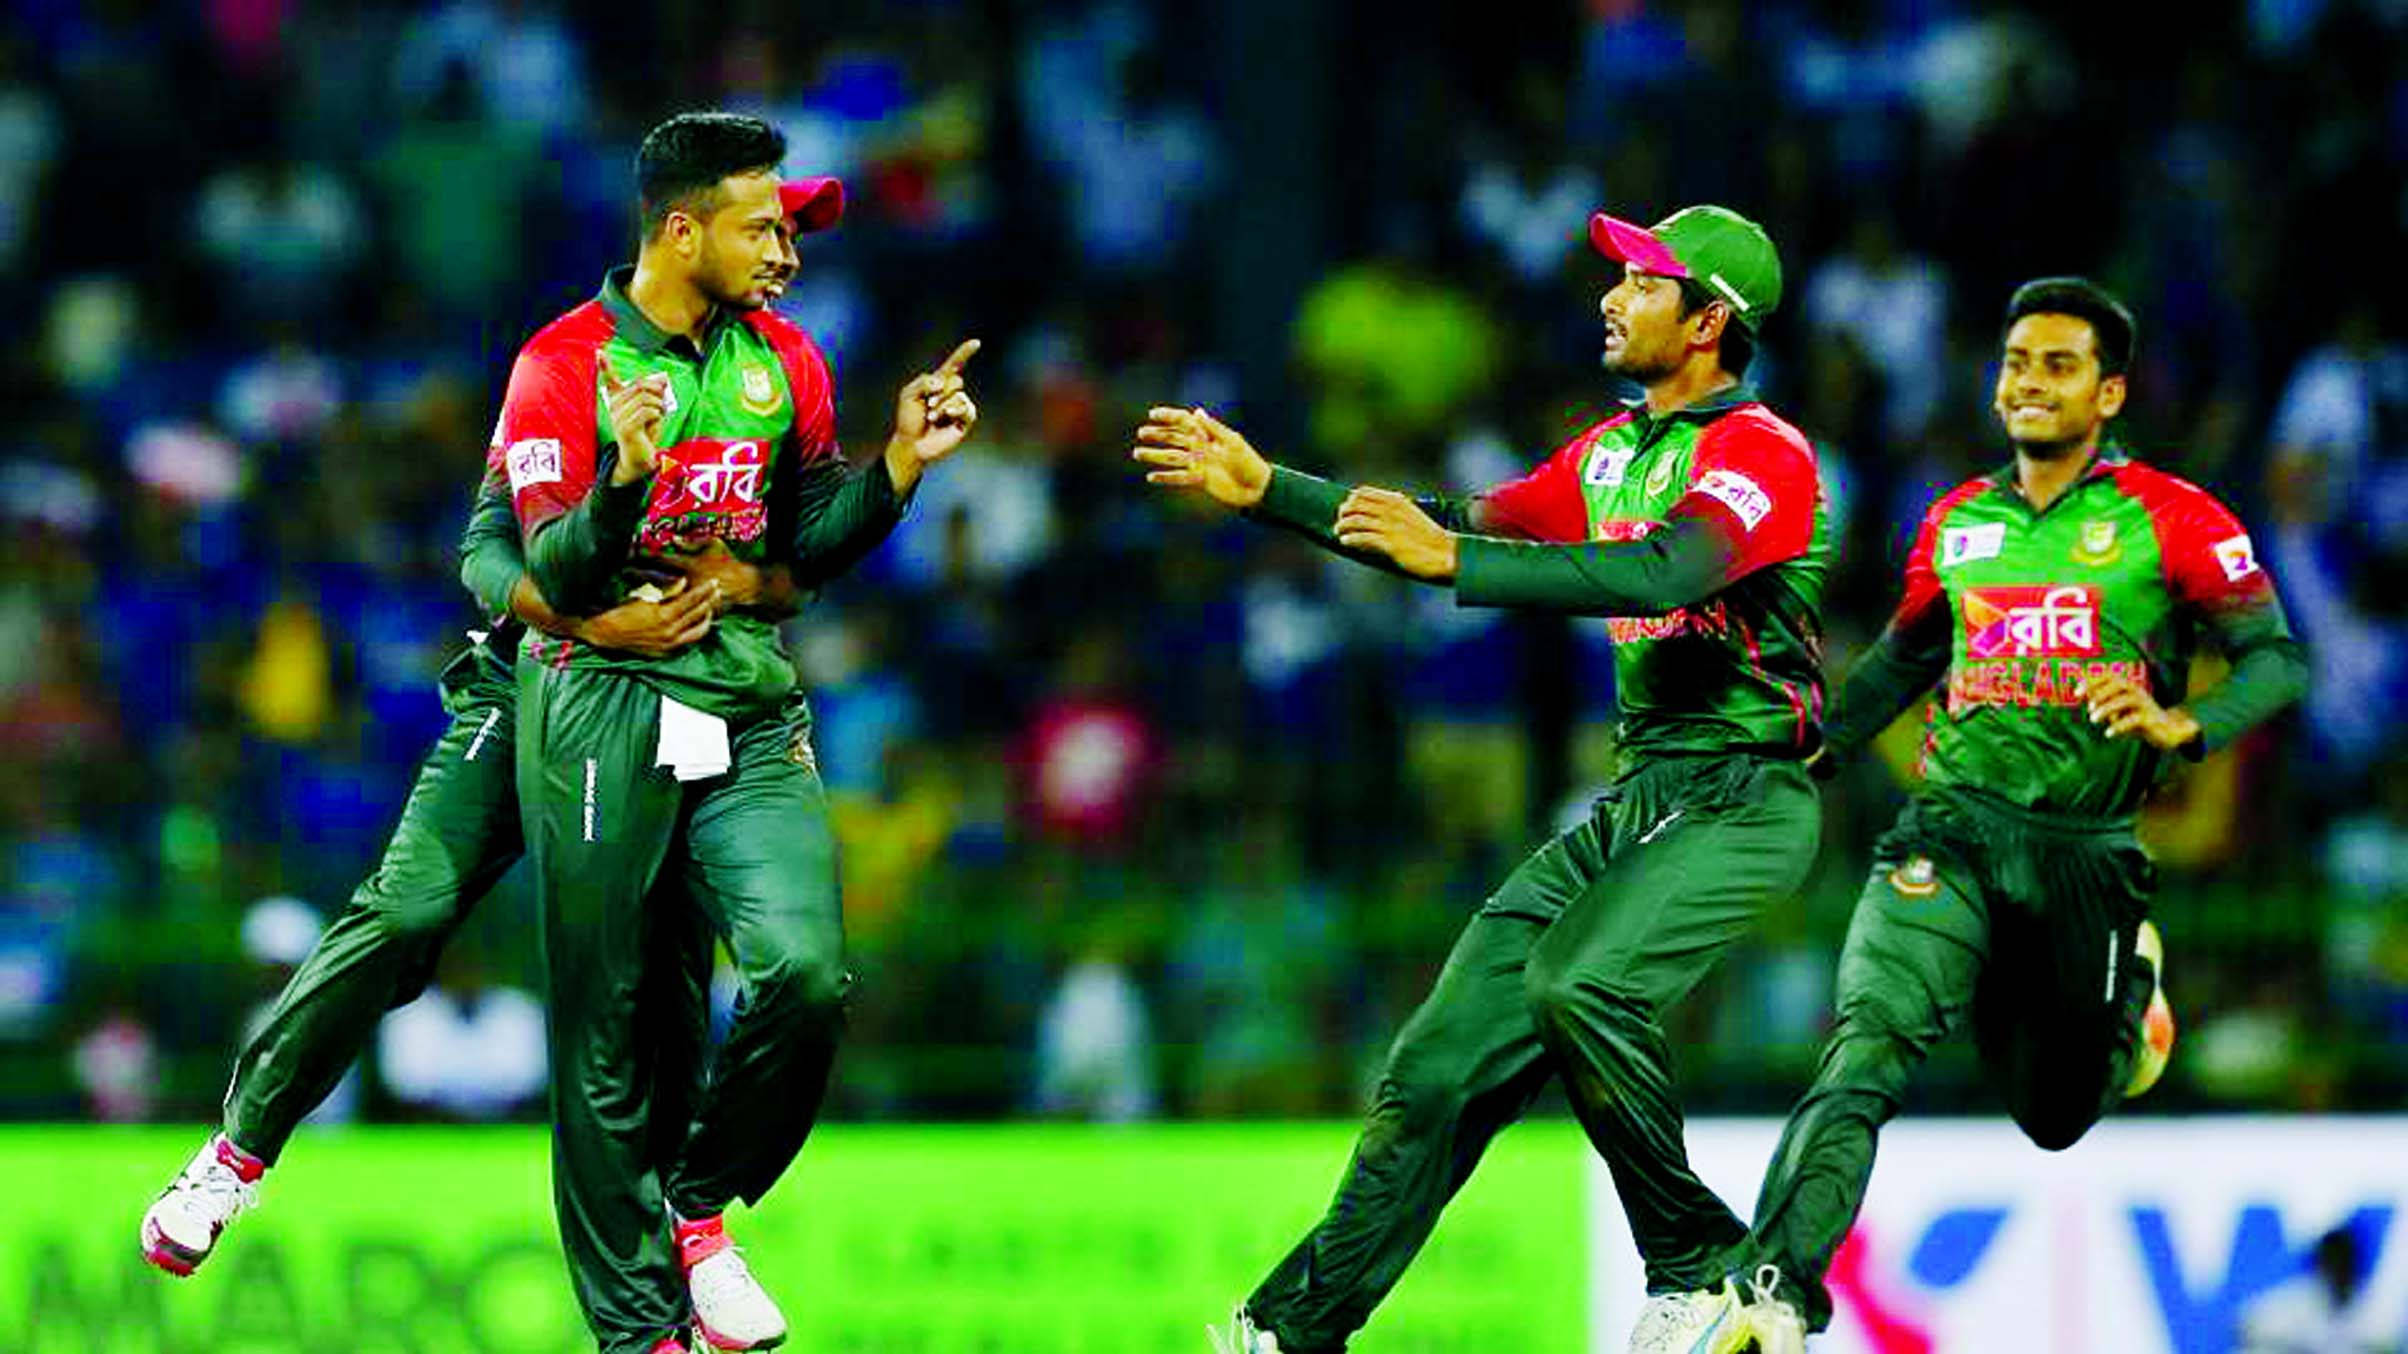 Shakib Al Hasan (left) celebrates the dismissal of Danushka Gunathilaka during their second Twenty20 cricket match in Nidahas Trophy in Colombo on Friday.